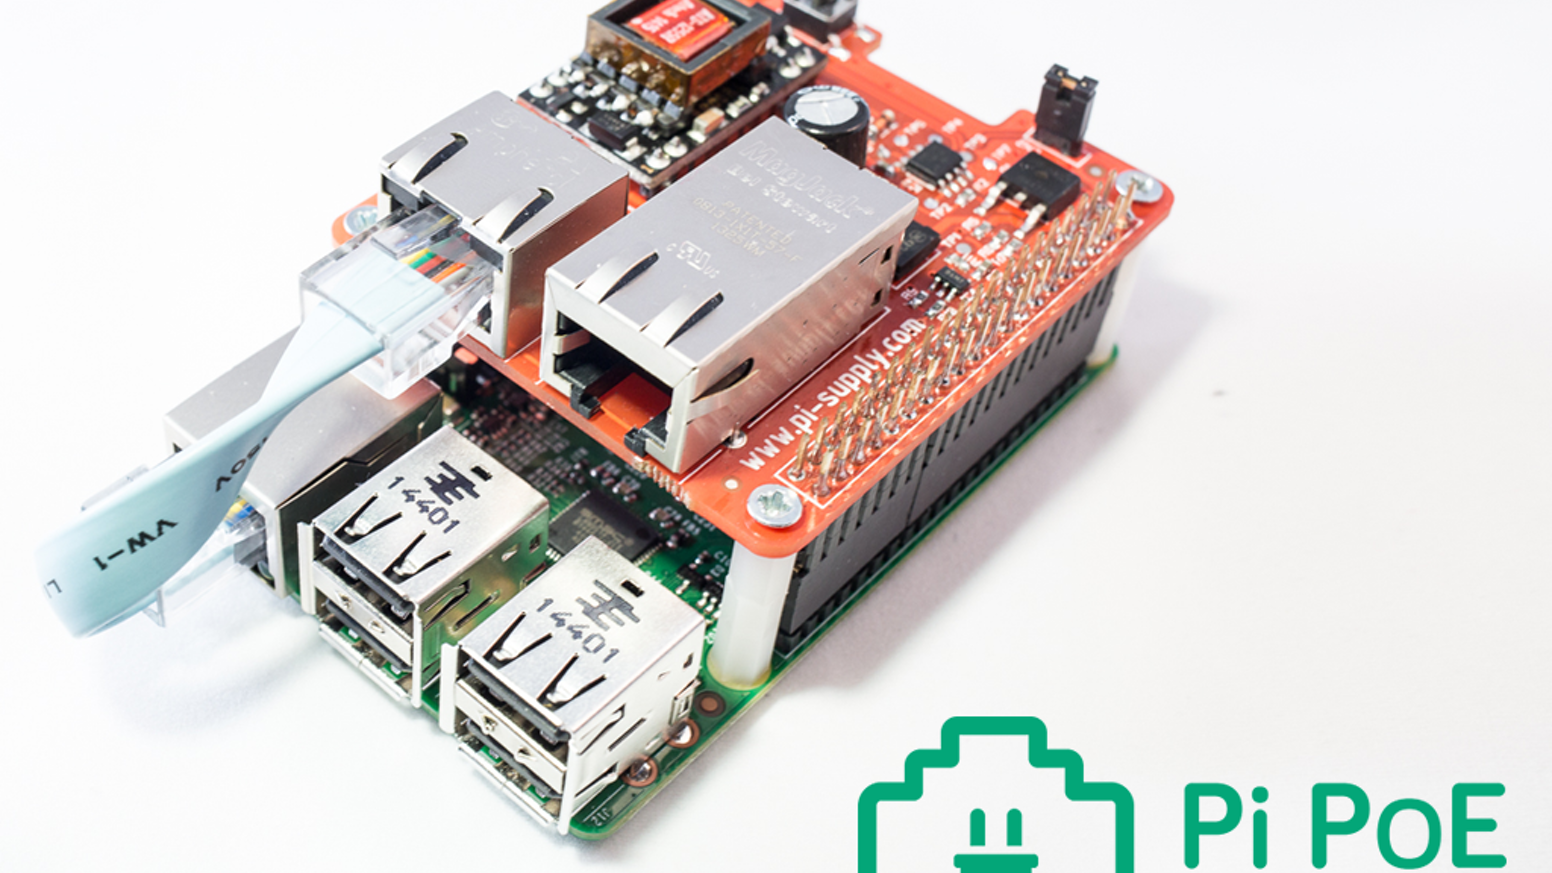 A power over Ethernet (PoE) add on board (HAT) for your Raspberry Pi with power management. Reduce the clutter of cables with Pi PoE!